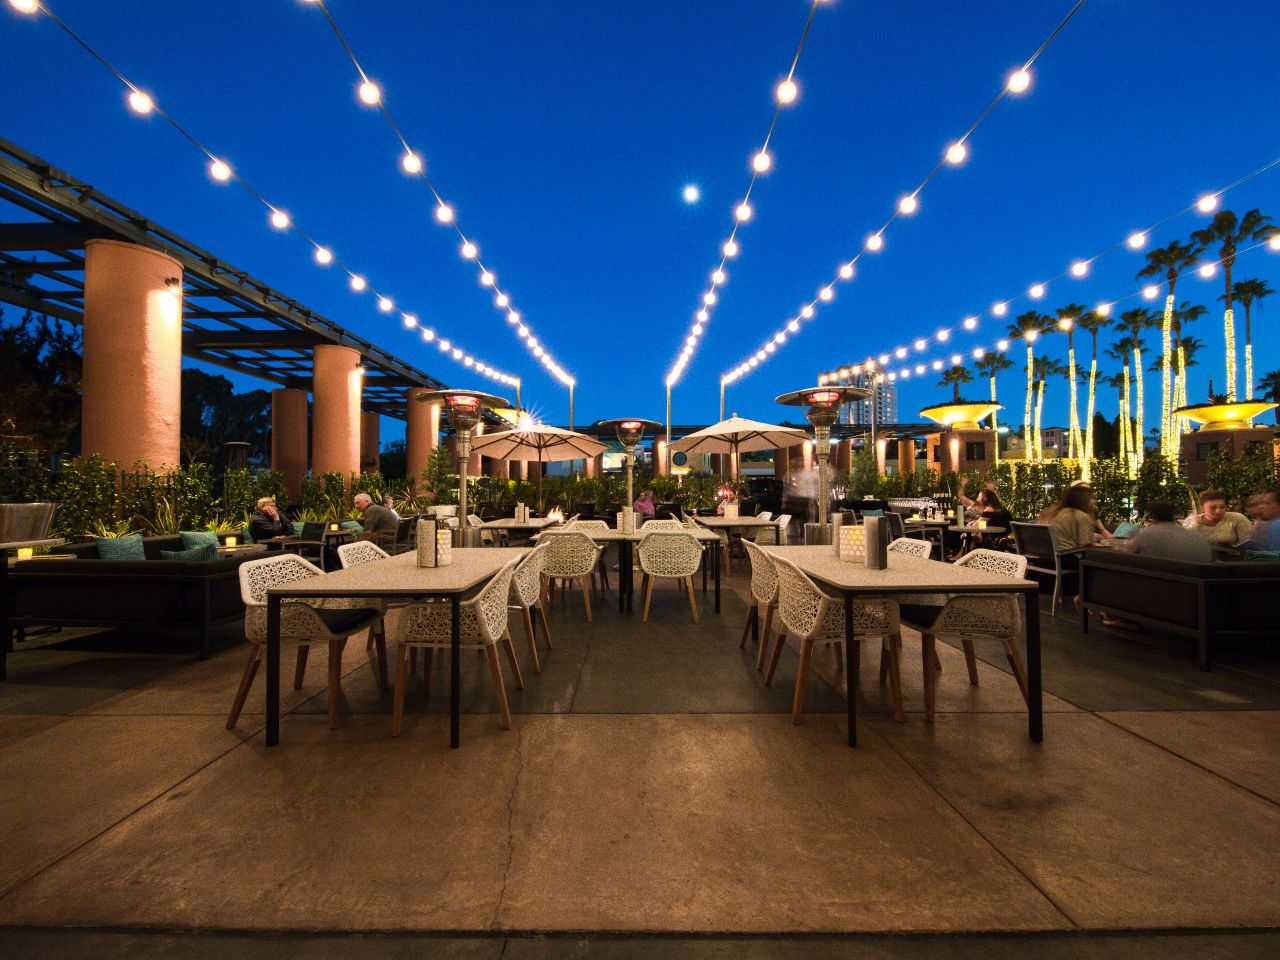 Row of set tables/chairs under patio lights at night